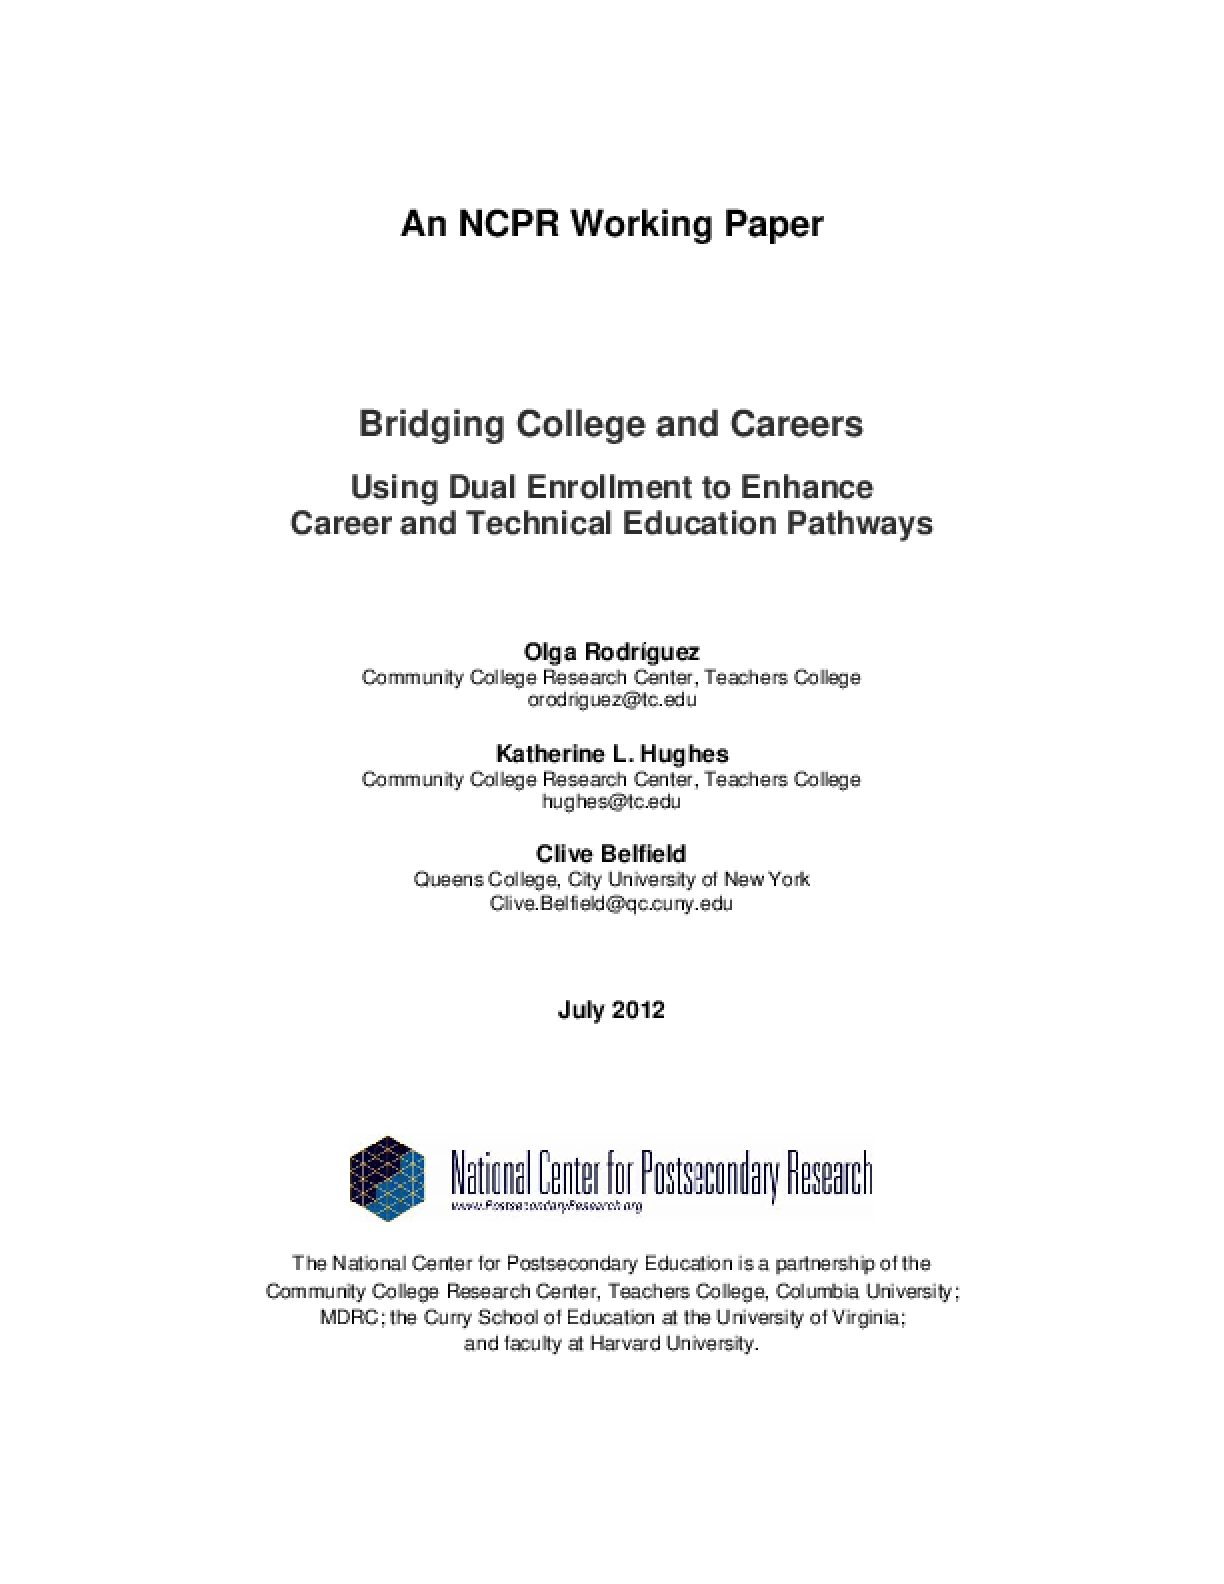 Bridging College and Careers: Using Dual Enrollment to Enhance Career and Technical Education Pathways